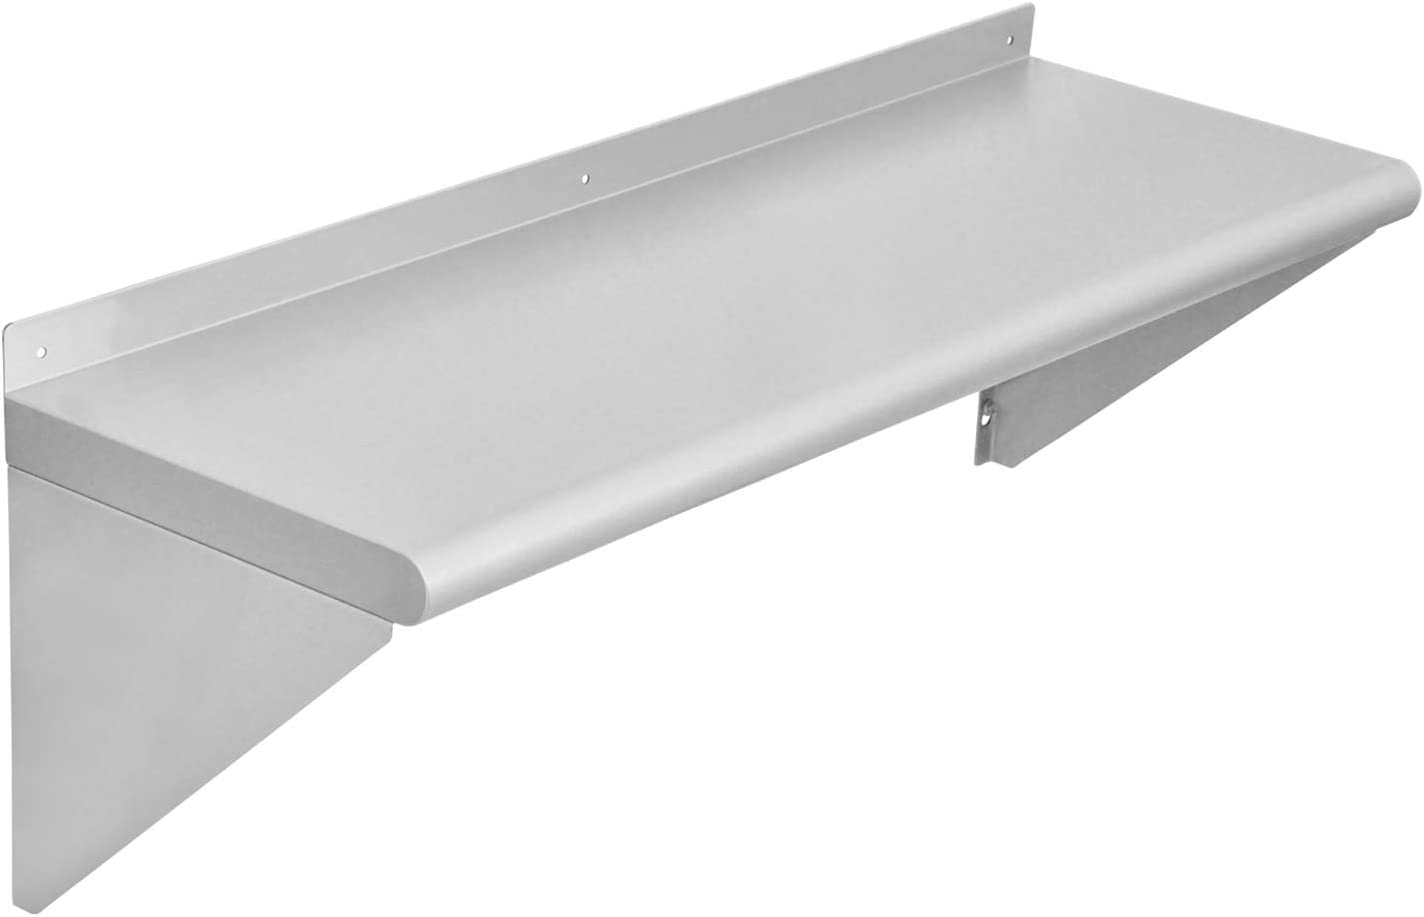 Chingoo Stainless Steel Shelf 12 x 36 Inches, Commercial NSF Wall Mount Floating Shelving for Restaurant, Kitchen, Home and Hotel